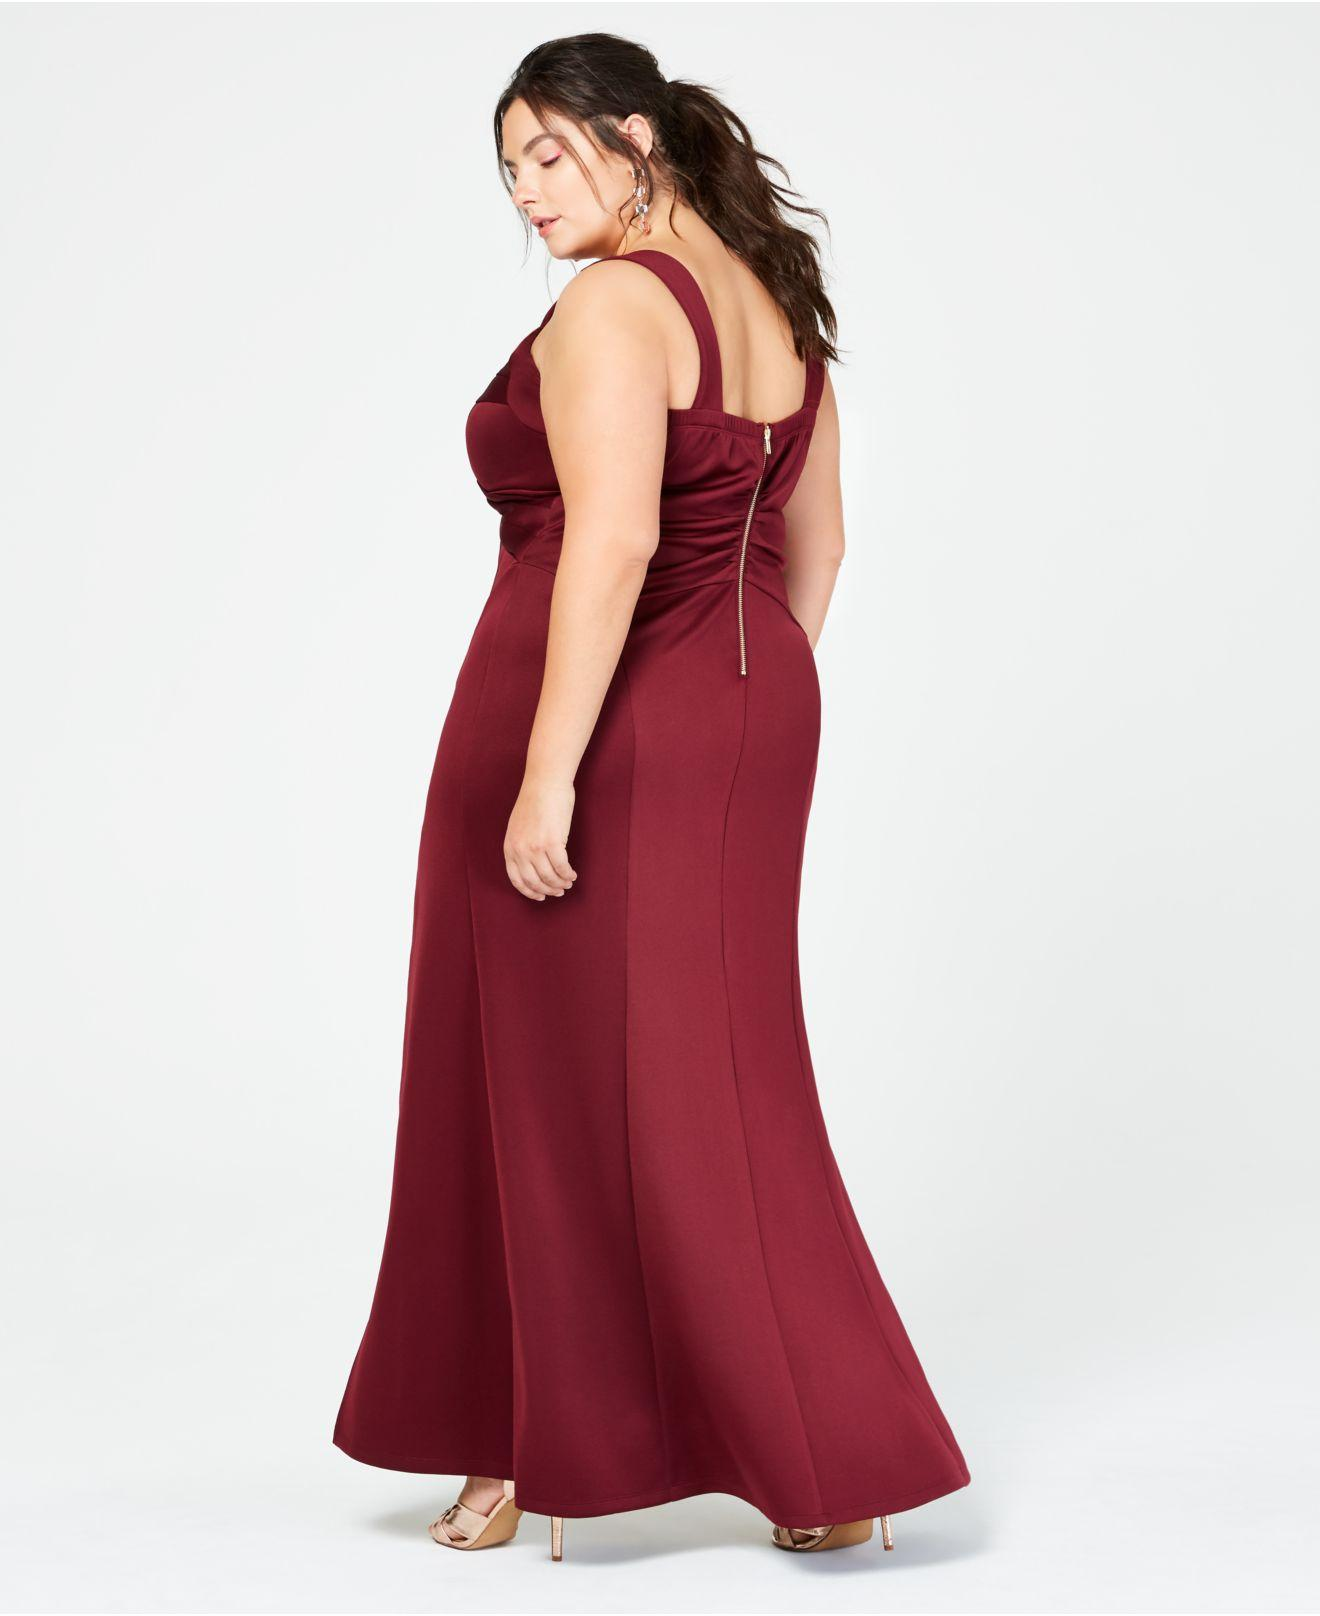 1042dccbfc3 Lyst - Emerald Sundae Trendy Plus Size Crossover Scuba Gown in Red